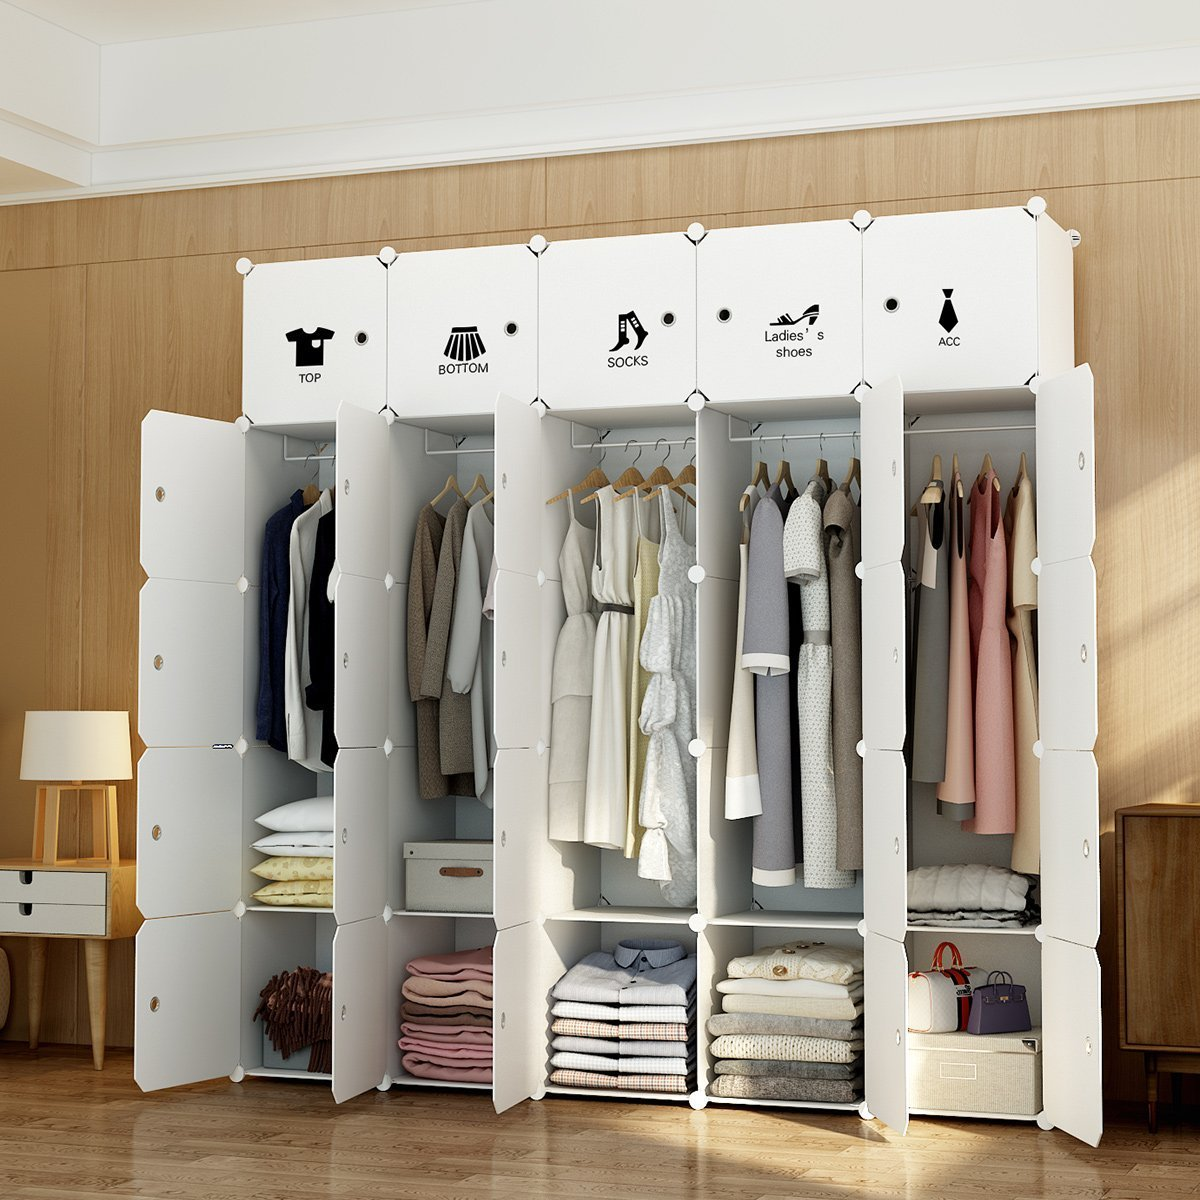 MAGINELS Portable Wardrobe Closet Armoire Cube Storage Organizer for Clothes Bedroom with Drawer White (10 Cubes & 5 Hanging Sections)